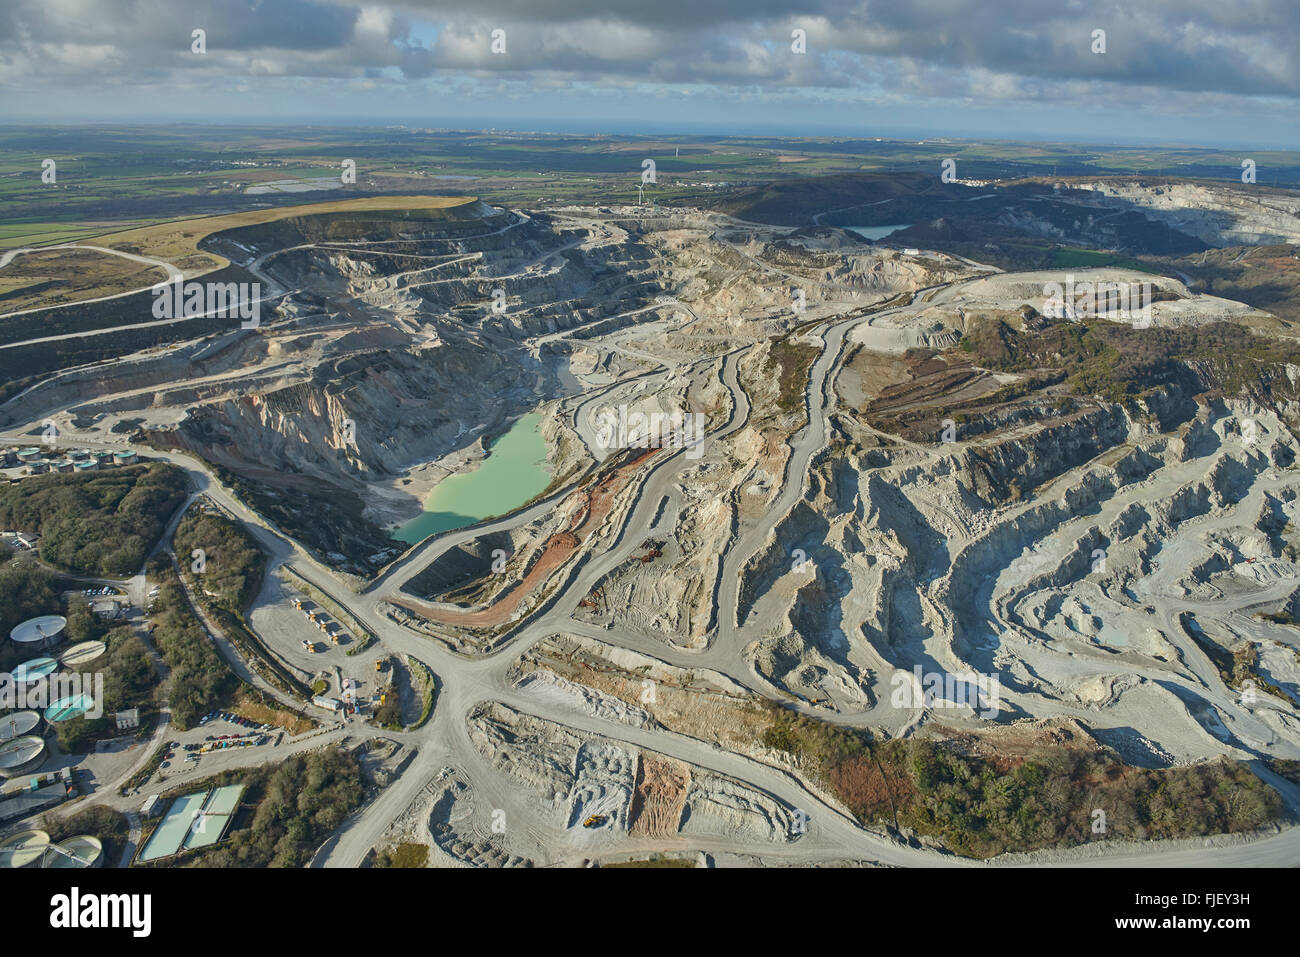 An aerial view of the China Clay works near St Austell in Cornwall - Stock Image